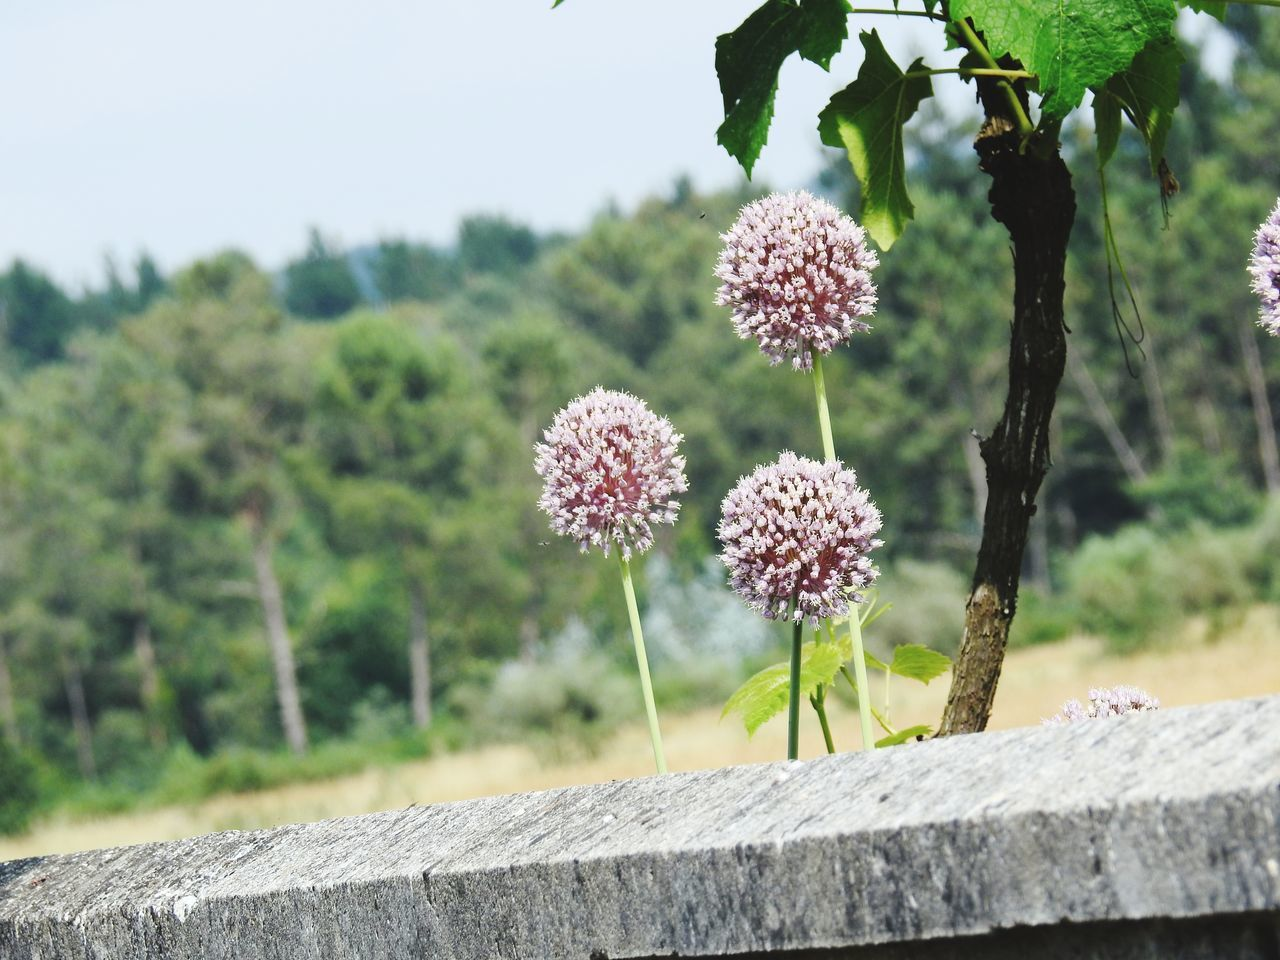 Nature Plant Flower Outdoors Beauty In Nature No People Fragility Focus On Foreground Close-up Growth Day Flower Head Freshness Sky Flower Onion Onion Flower Flores De Cebolla Cebollas Con Flor Flor Bola Flower Balls Flower Ball Nikon Nikonphotography Nikon P900 Nature_collection